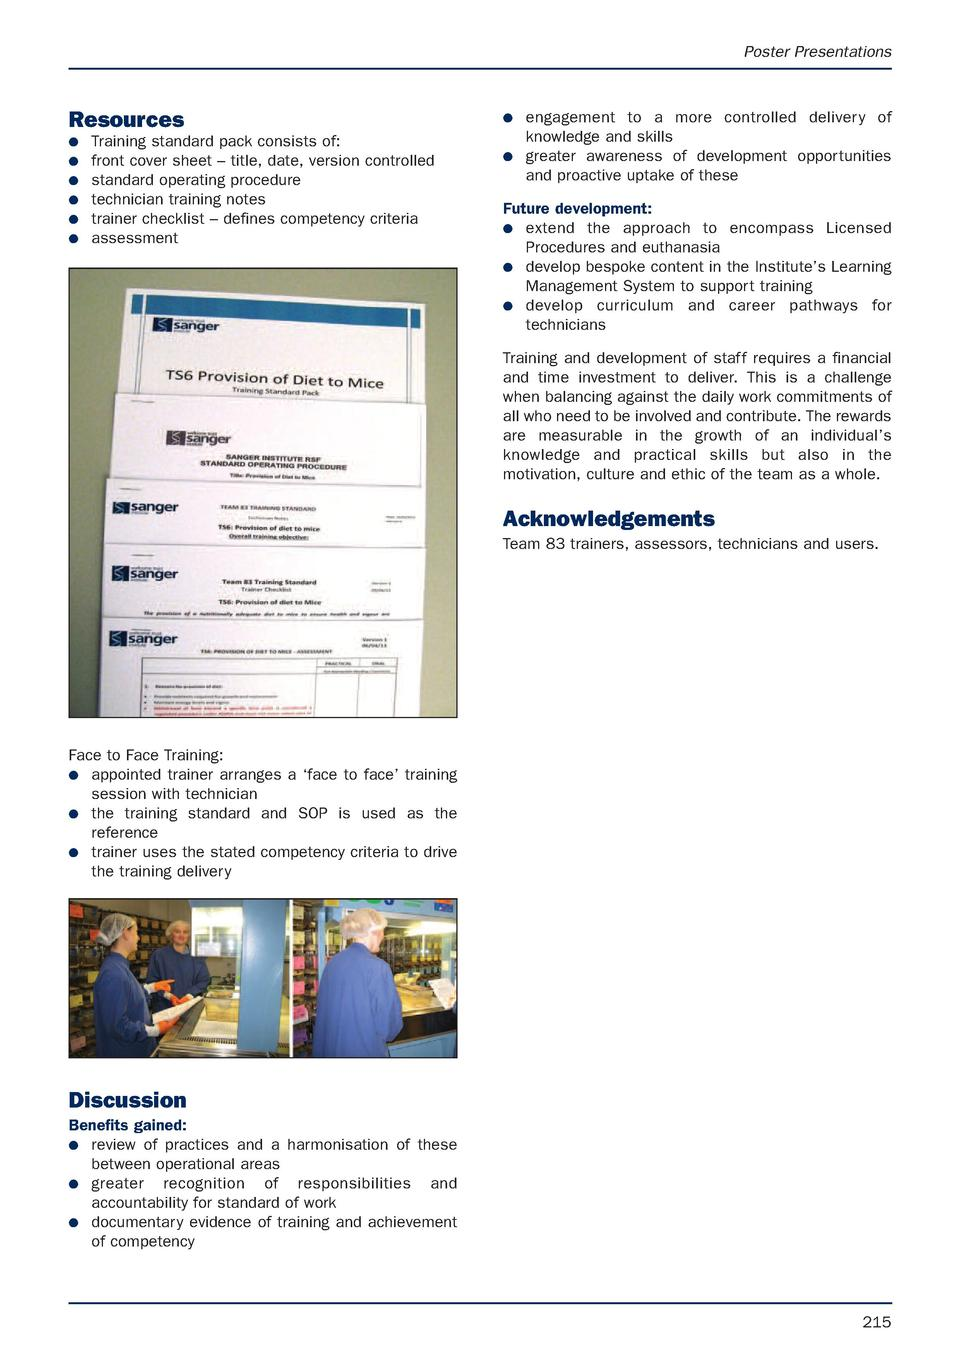 Poster Presentations  Resources G G G G G G  Training standard pack consists of  front cover sheet     title, date, versio...